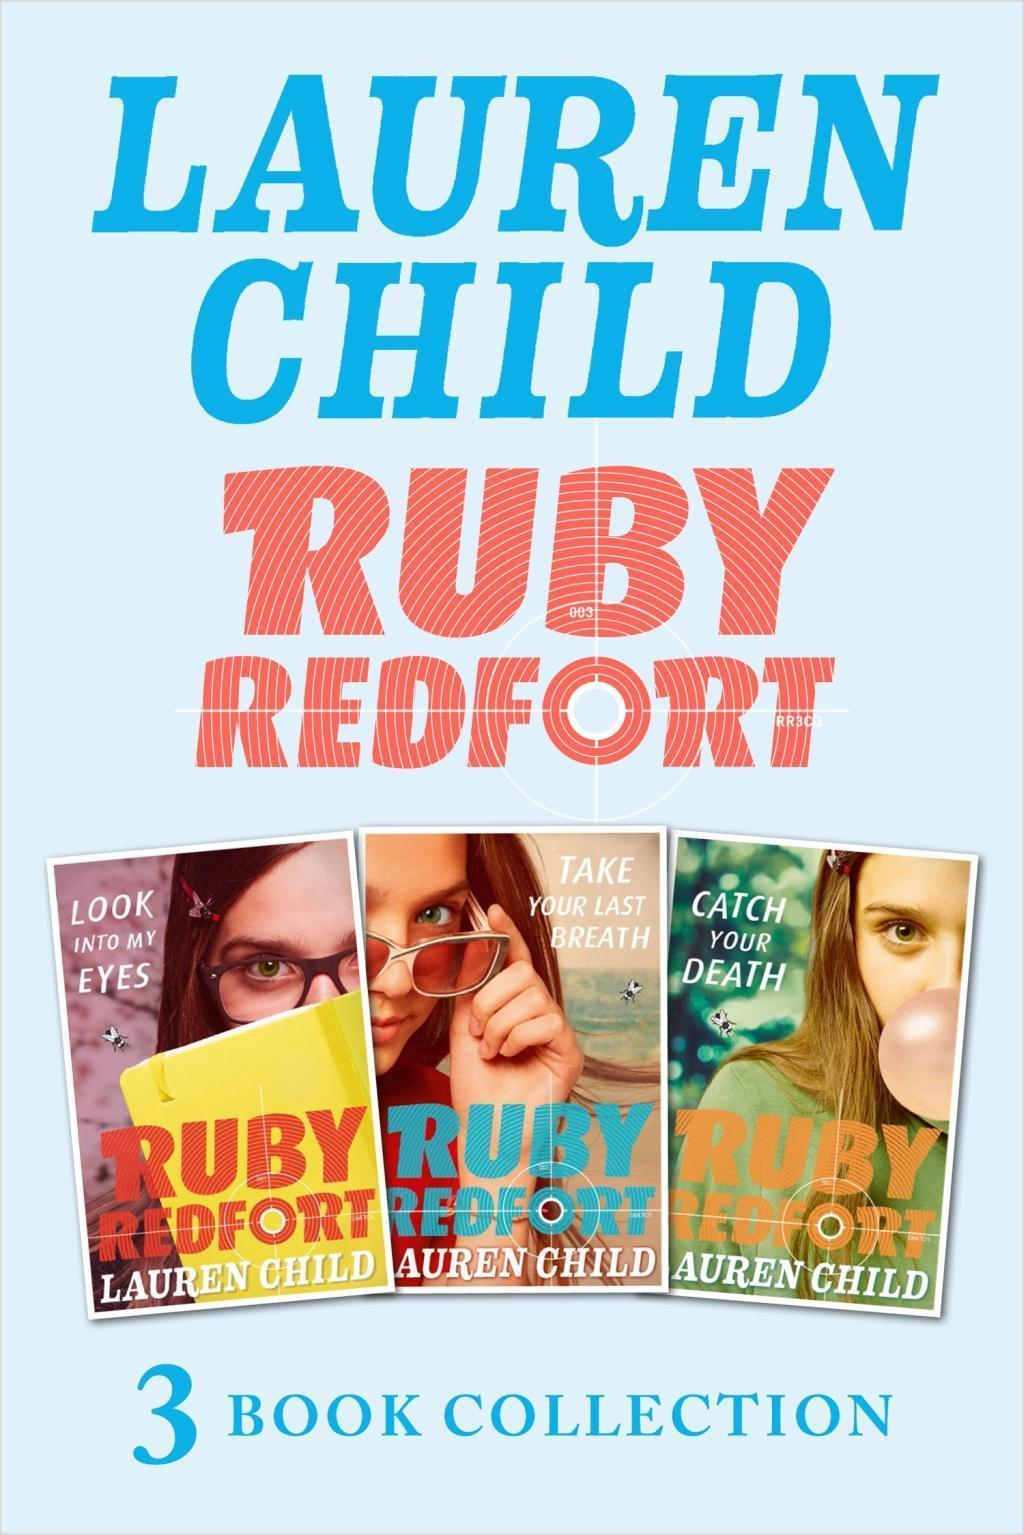 Ruby Redfort - 3 Super-Awesome Books (Look into My Eyes, Take Your Last Breath, Catch Your Death)